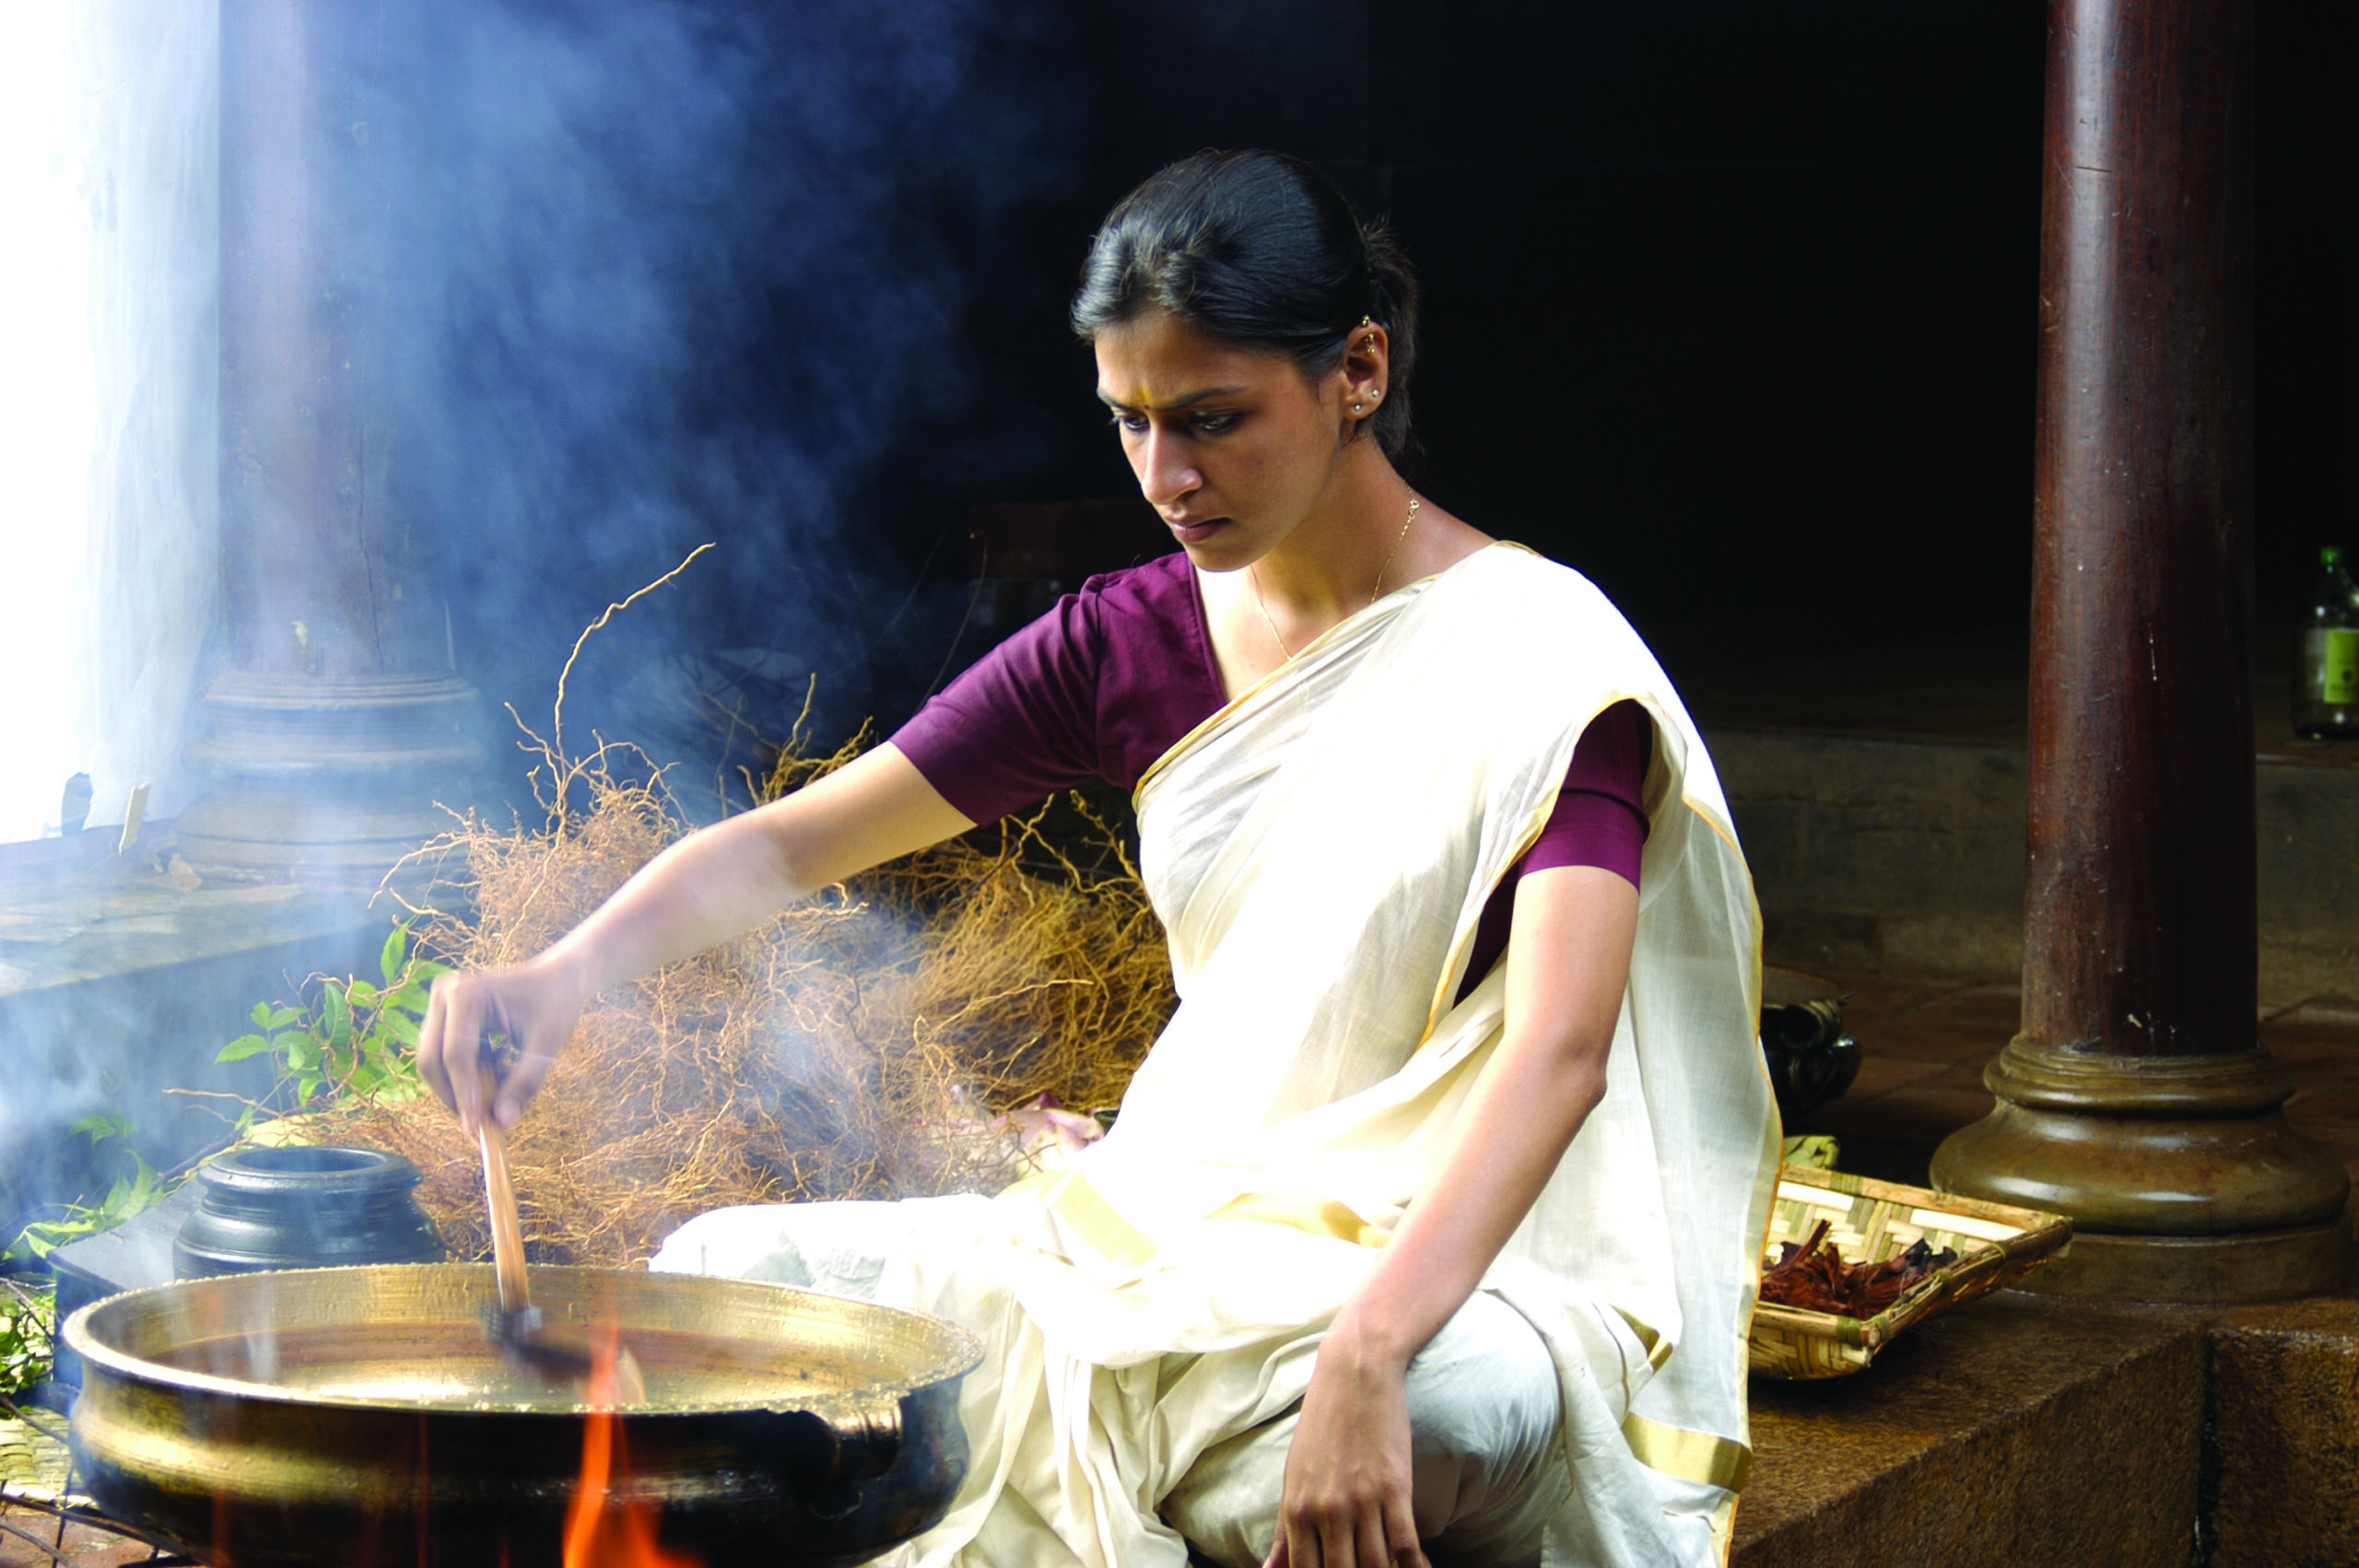 woman stirring a smoking pot over an open fire in a white saree and purple shirt